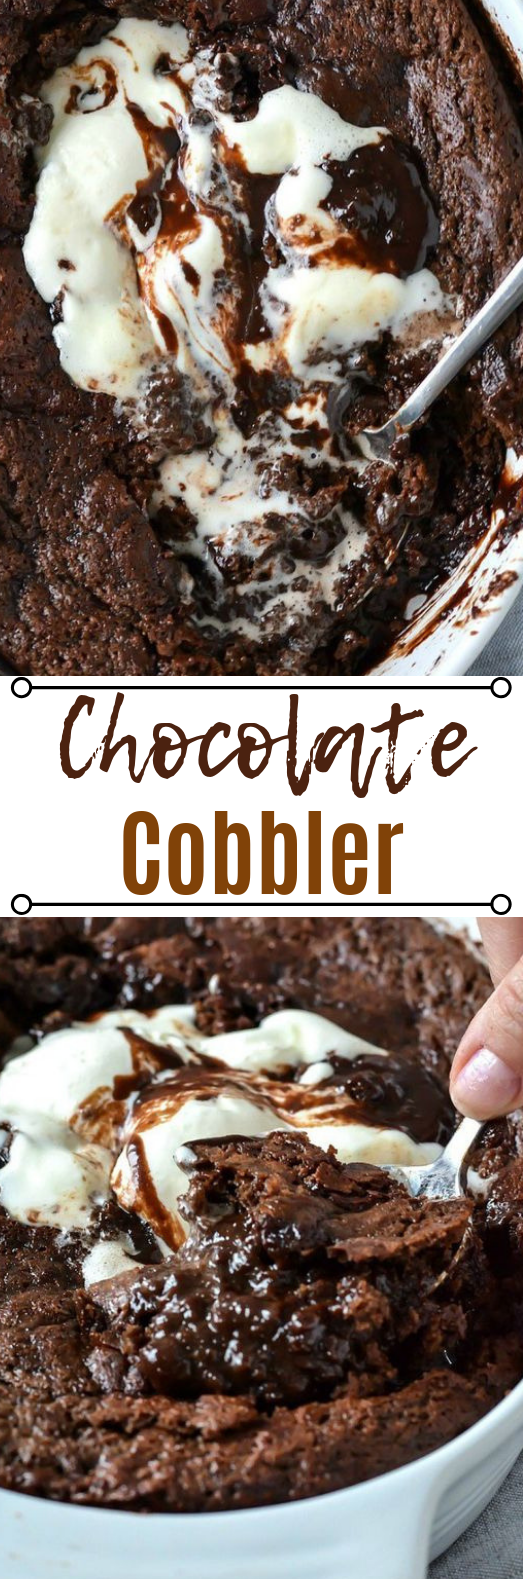 Old-Fashioned Chocolate Cobbler #chocolate #dessert